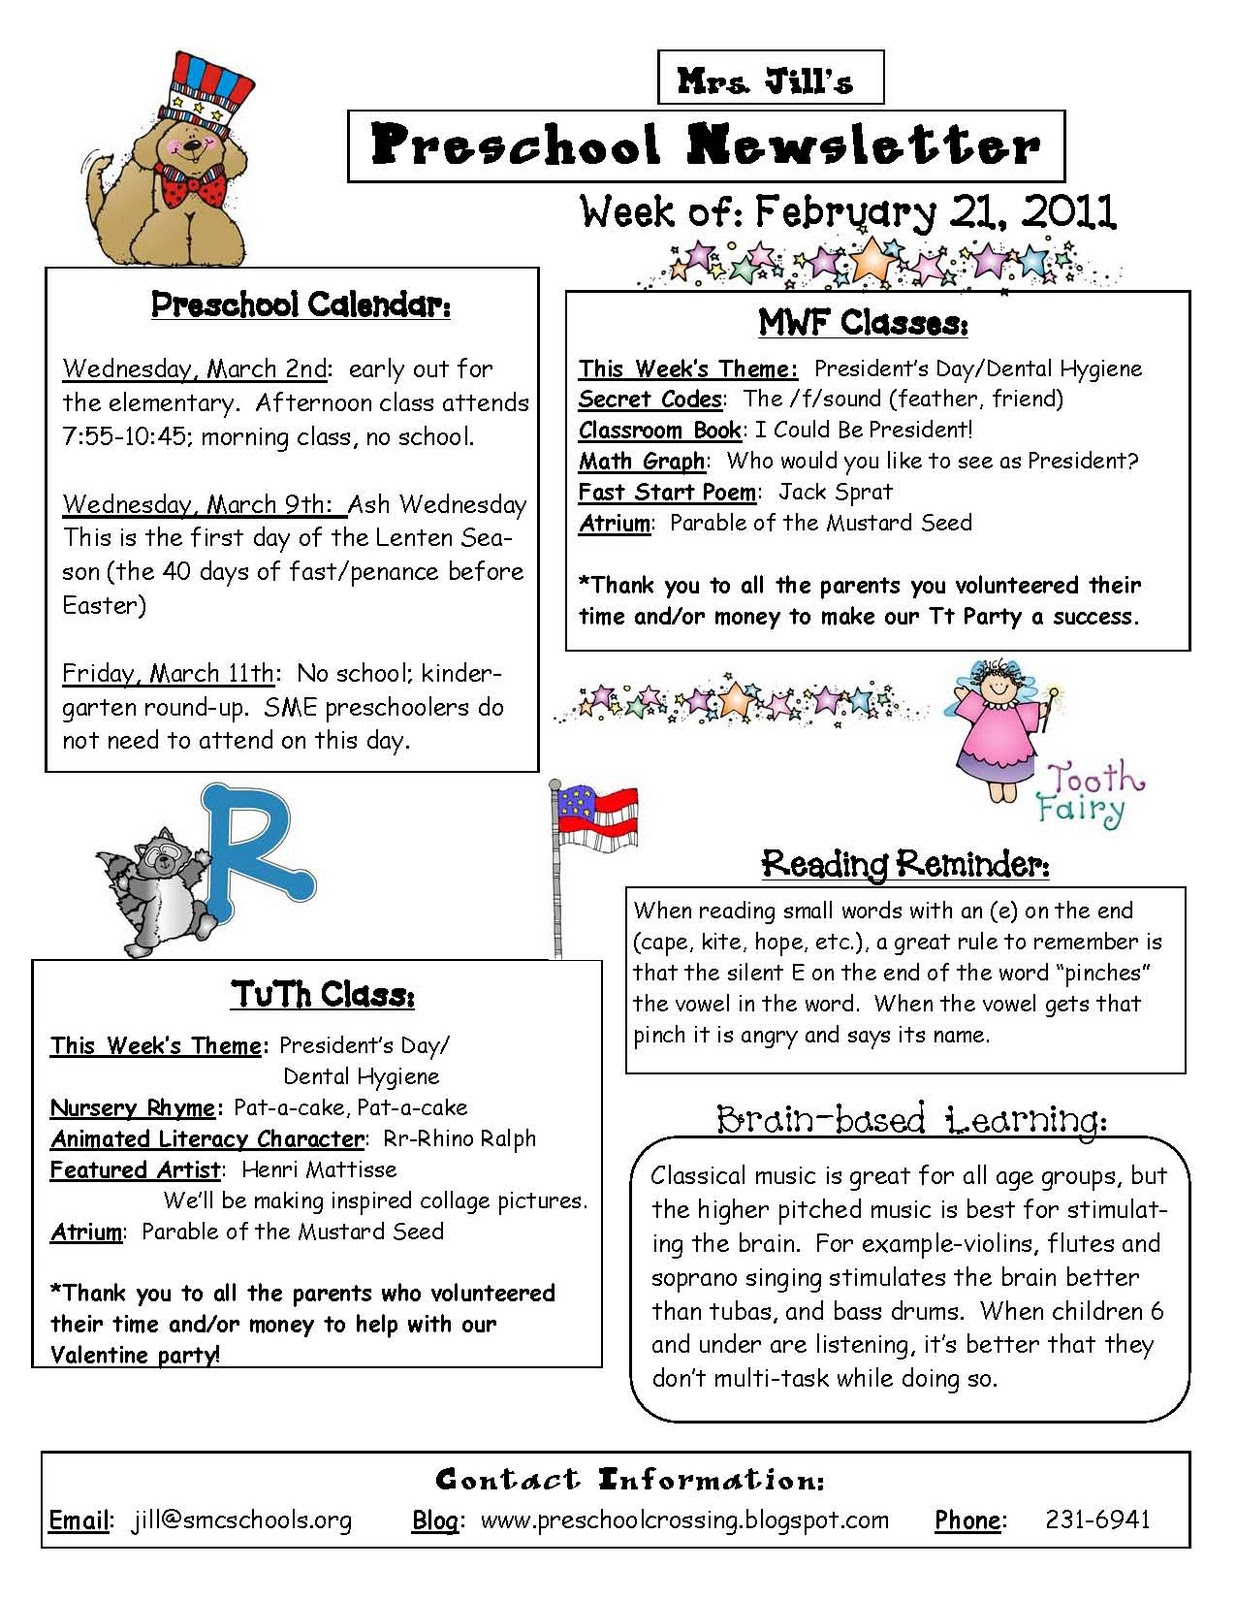 preschool crossing  here is an example of my weekly newsletter